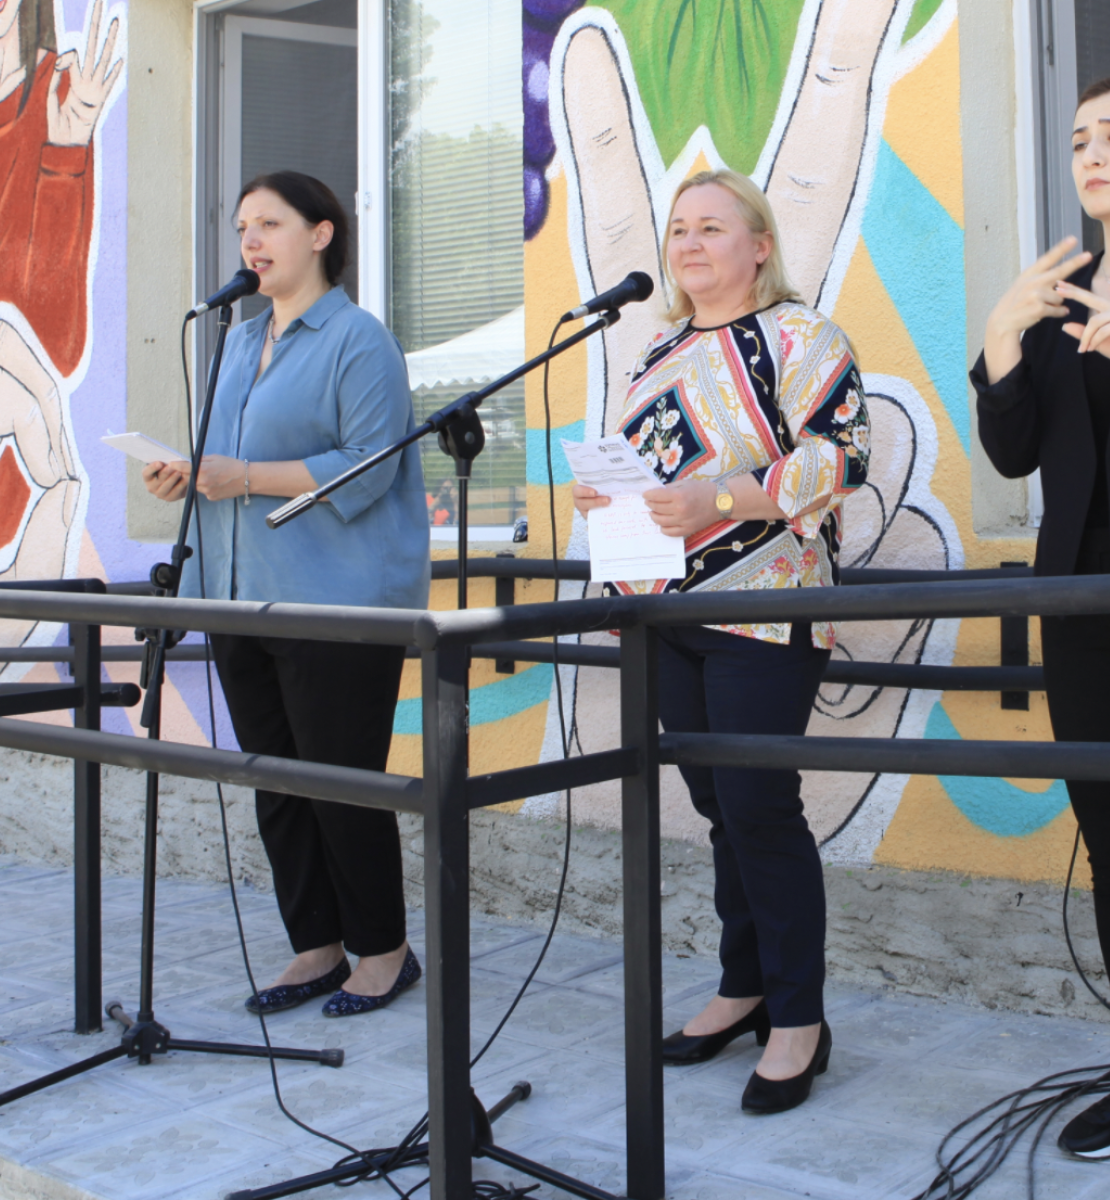 Three women stand in front of a building decorated with many colors. A woman, dressed in black, on the end is translating the speech to sign language.